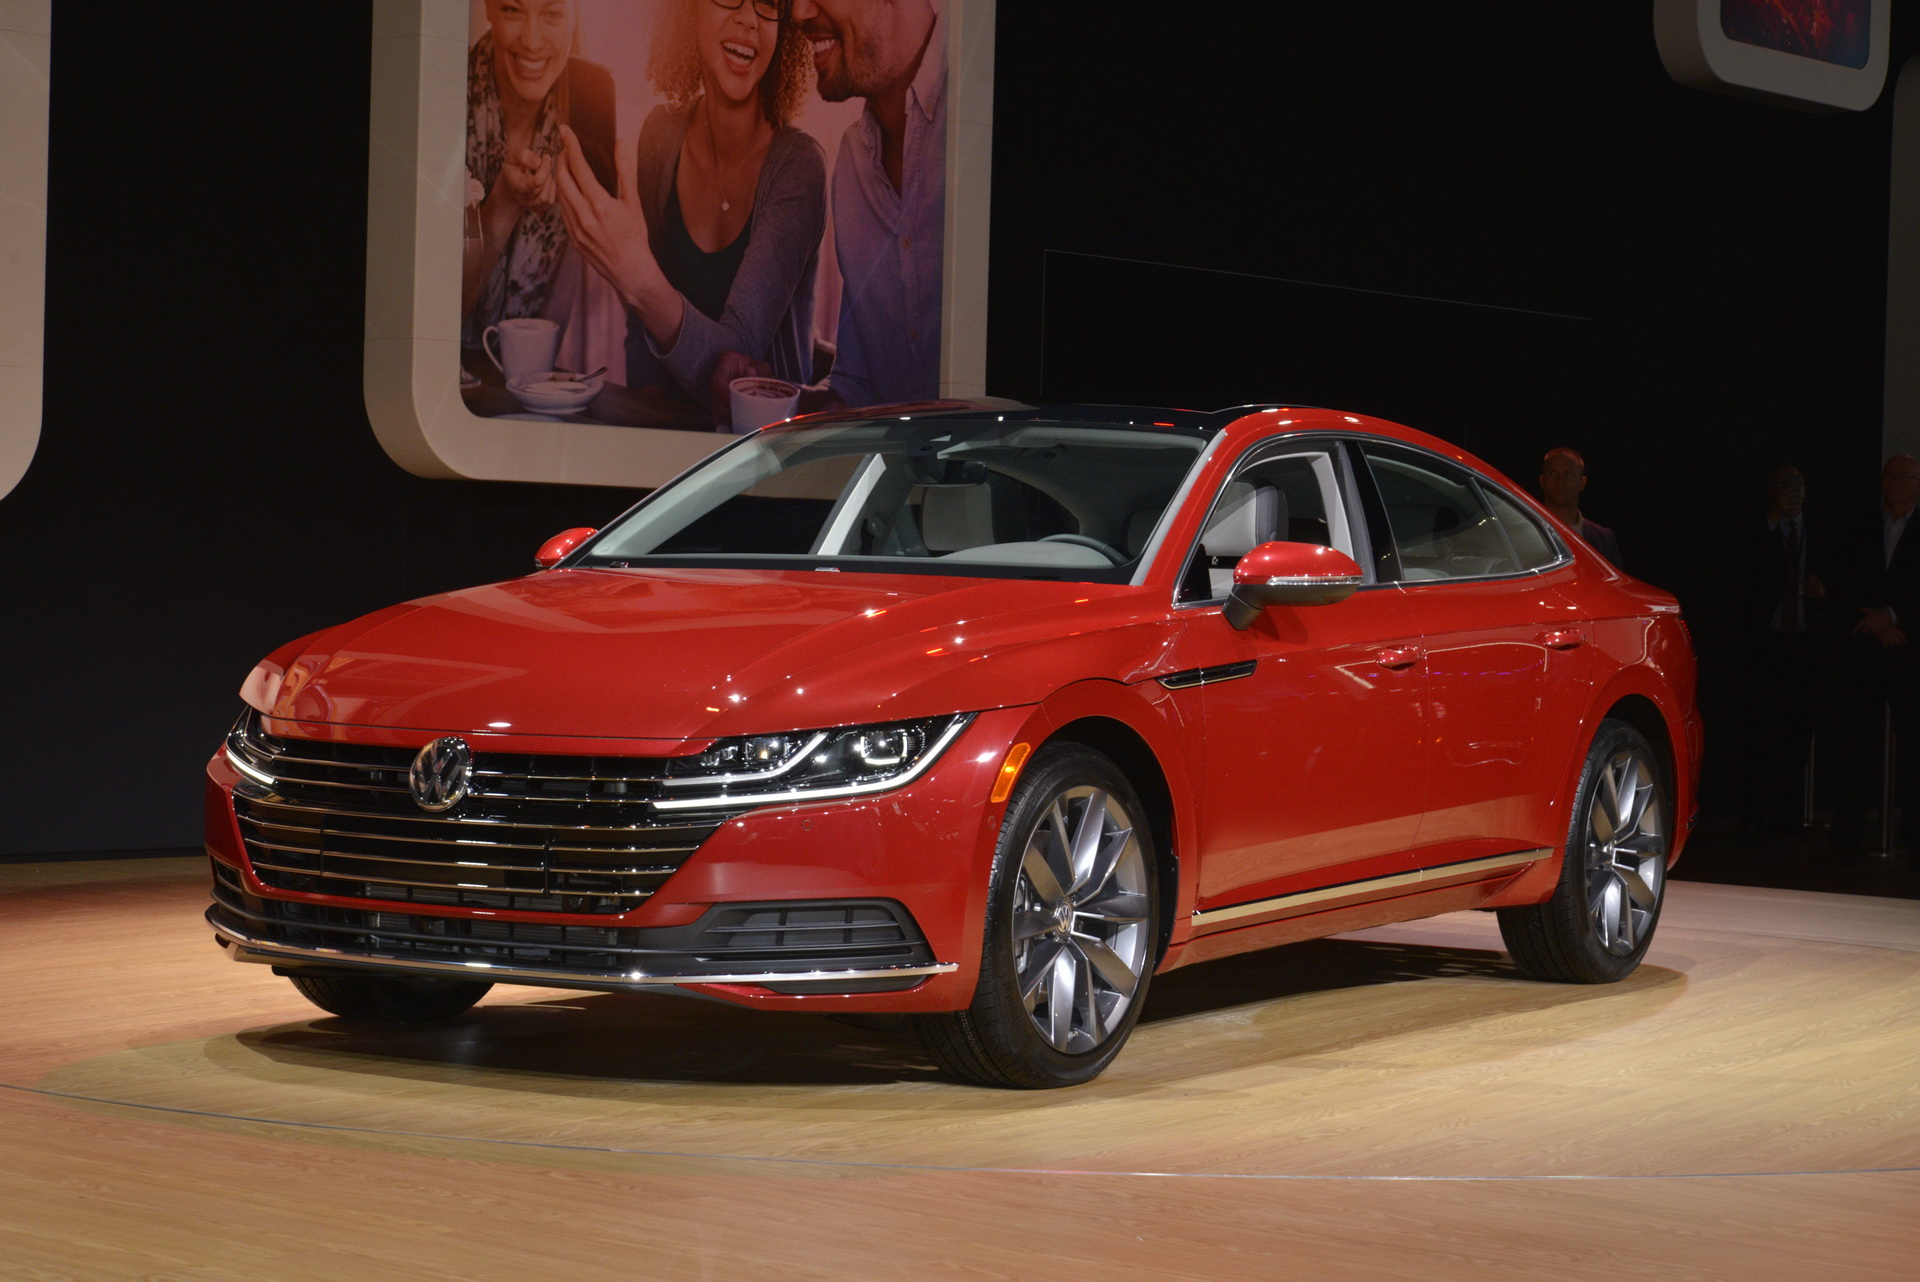 Volkswagen AG has officially launched the sales of its latest Arteon fastback on the North American market